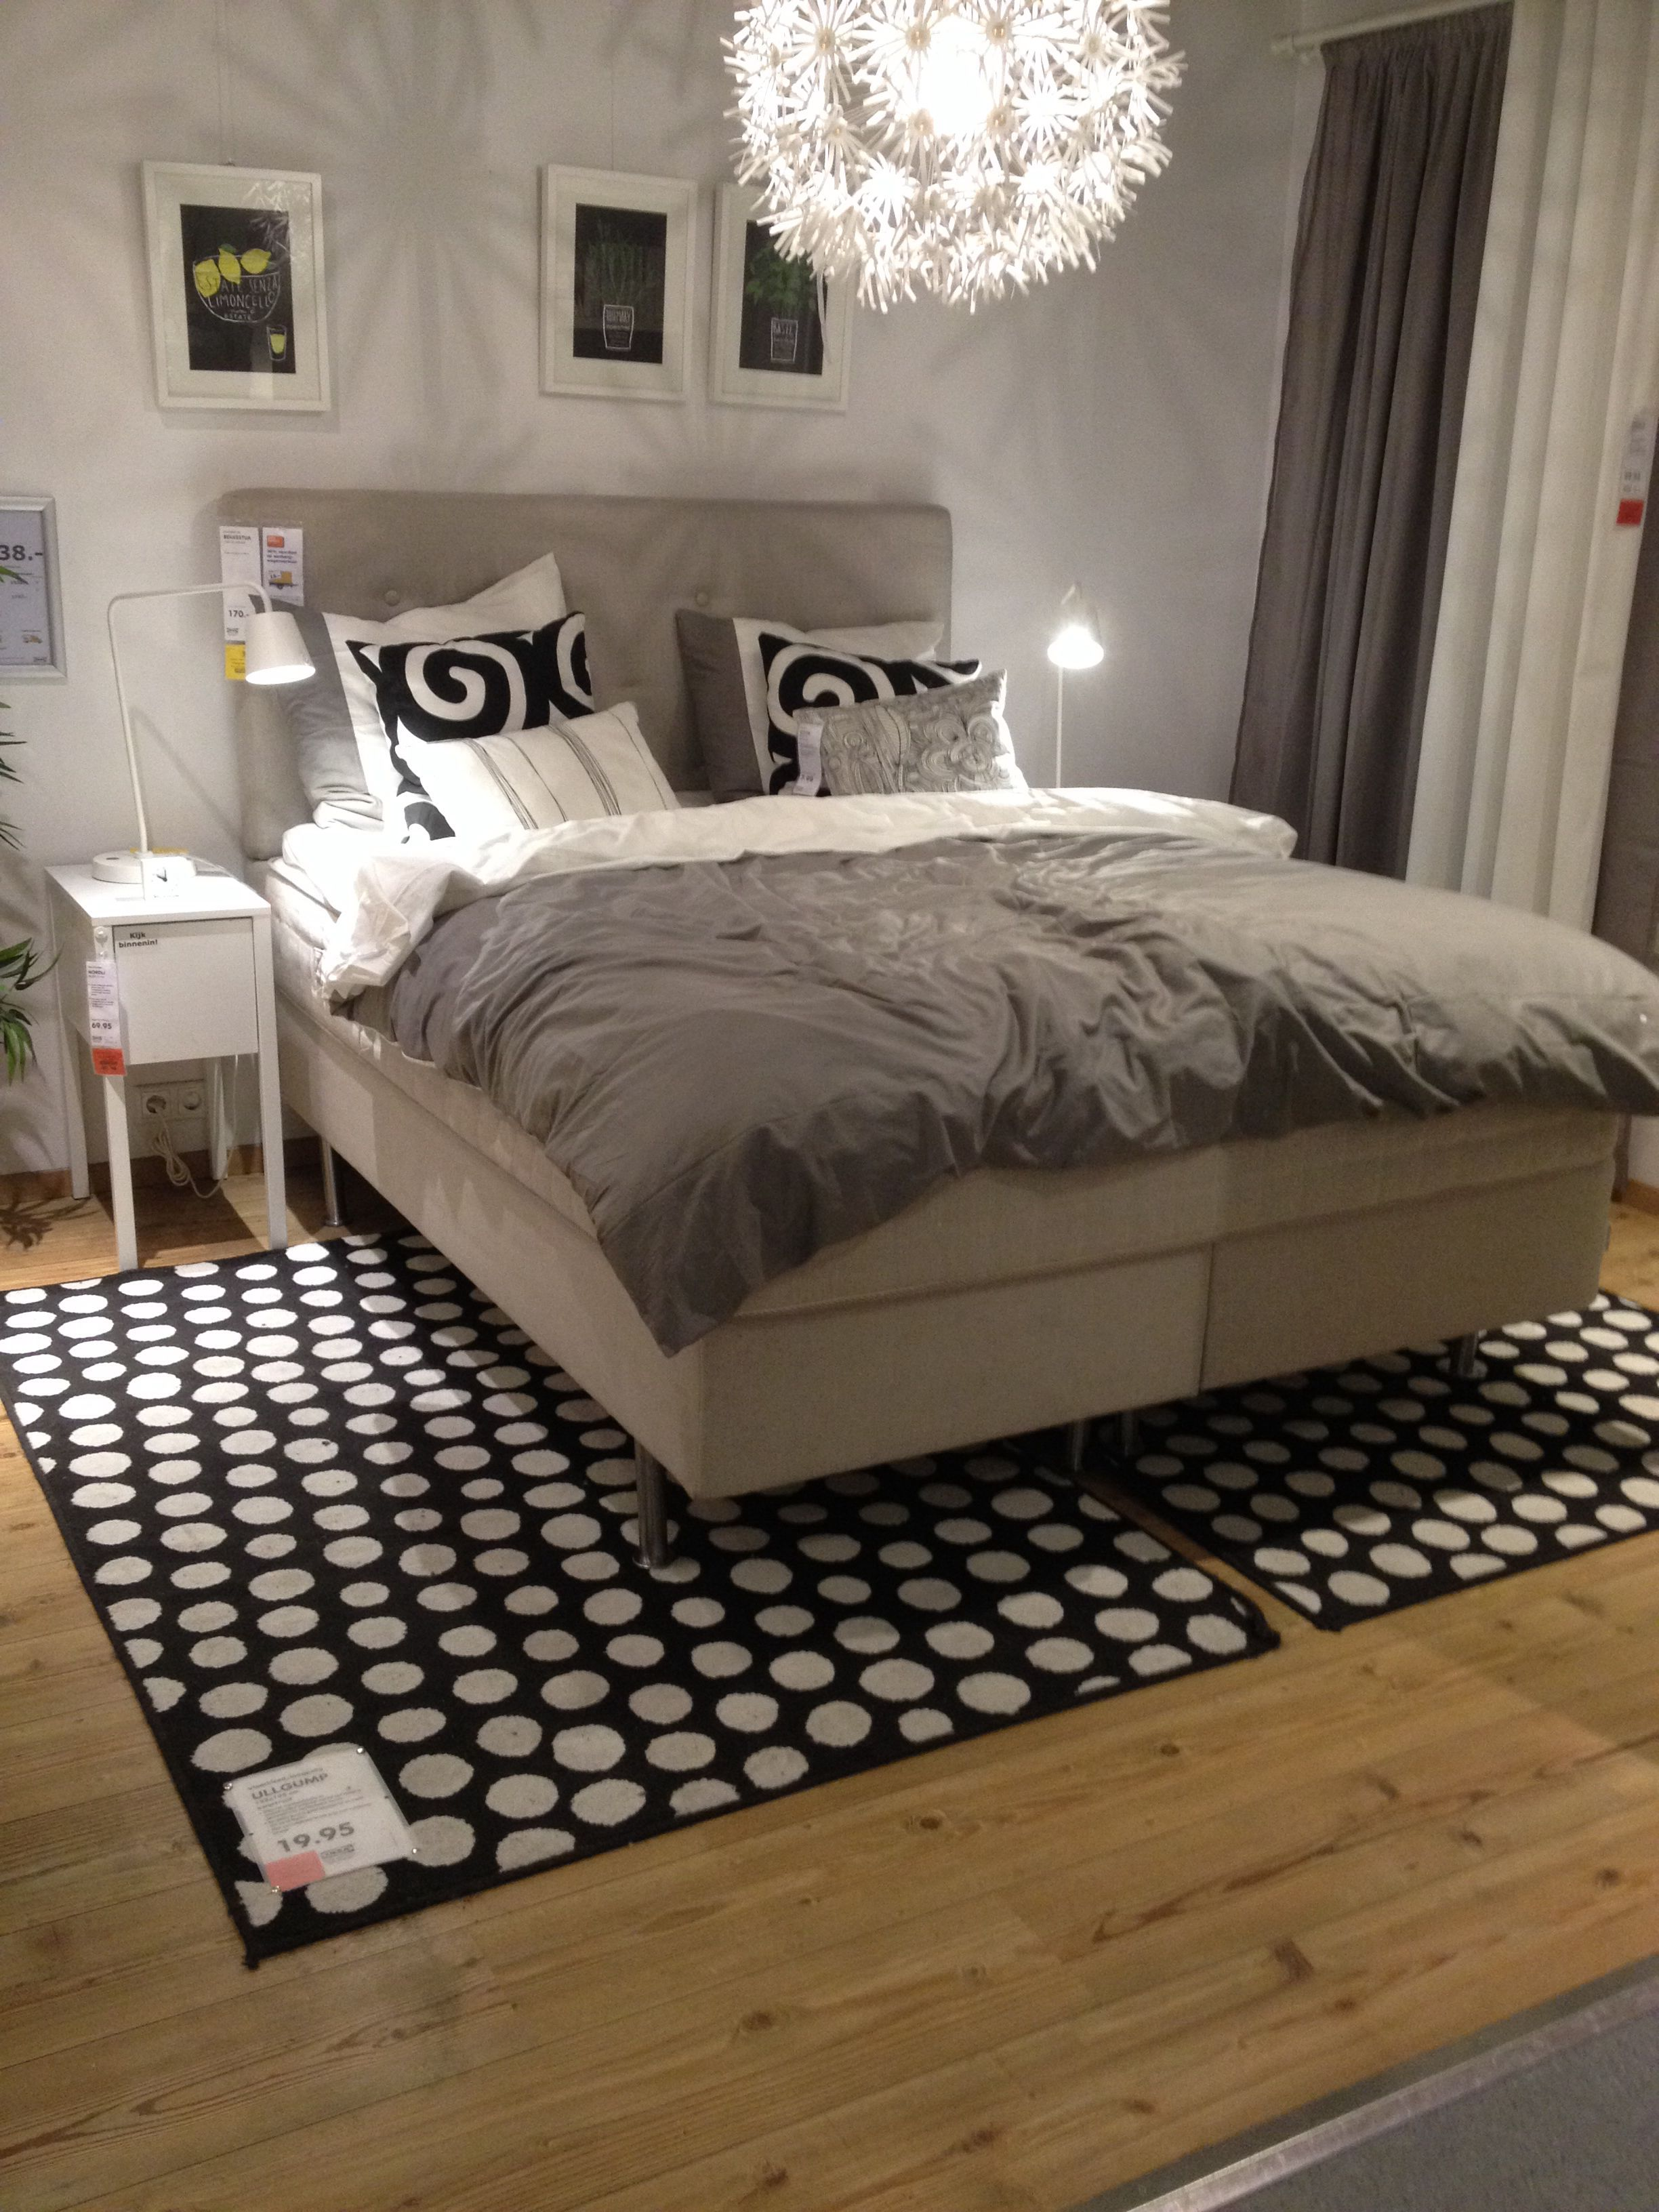 Boxspring Bedden Bij Ikea.Ikea Boxspring En Lamp Bedroom Ikea Love Home Decor Ikea